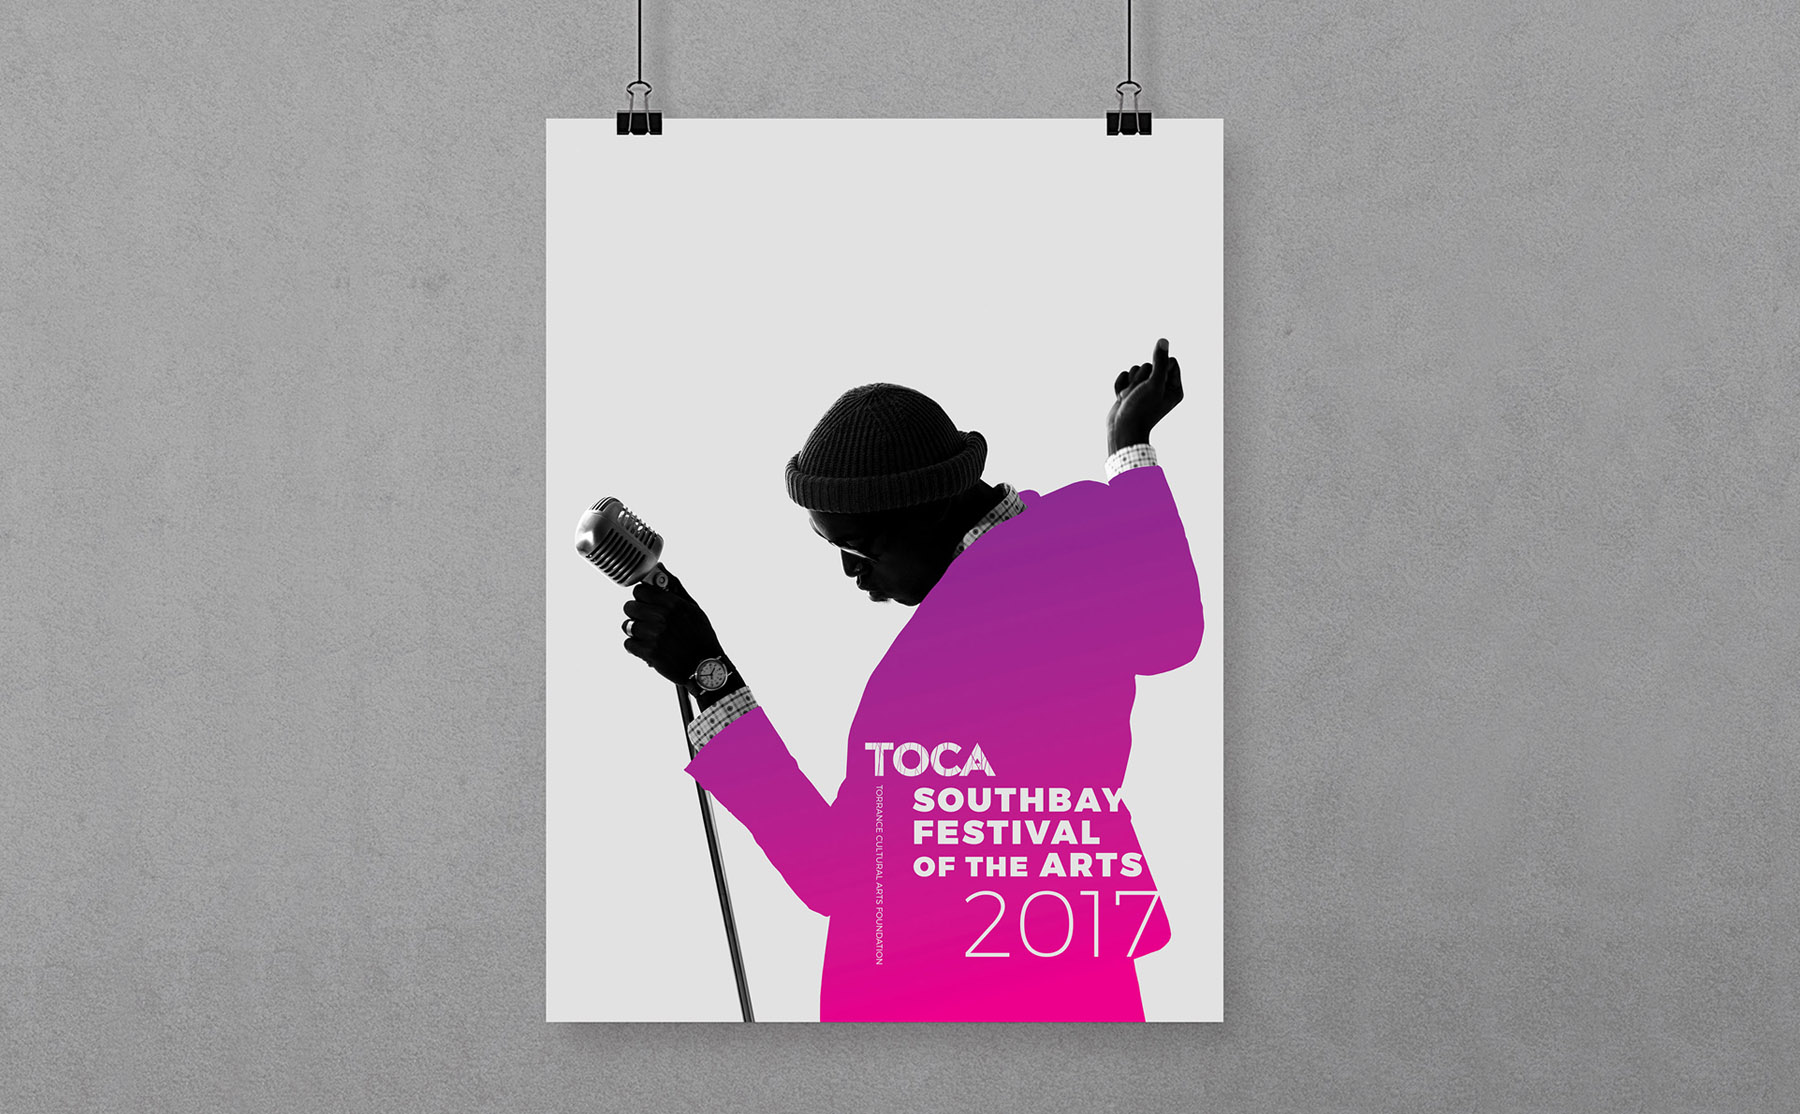 toca commemorative poster southbay festival of the arts designed by Ashcraft Design